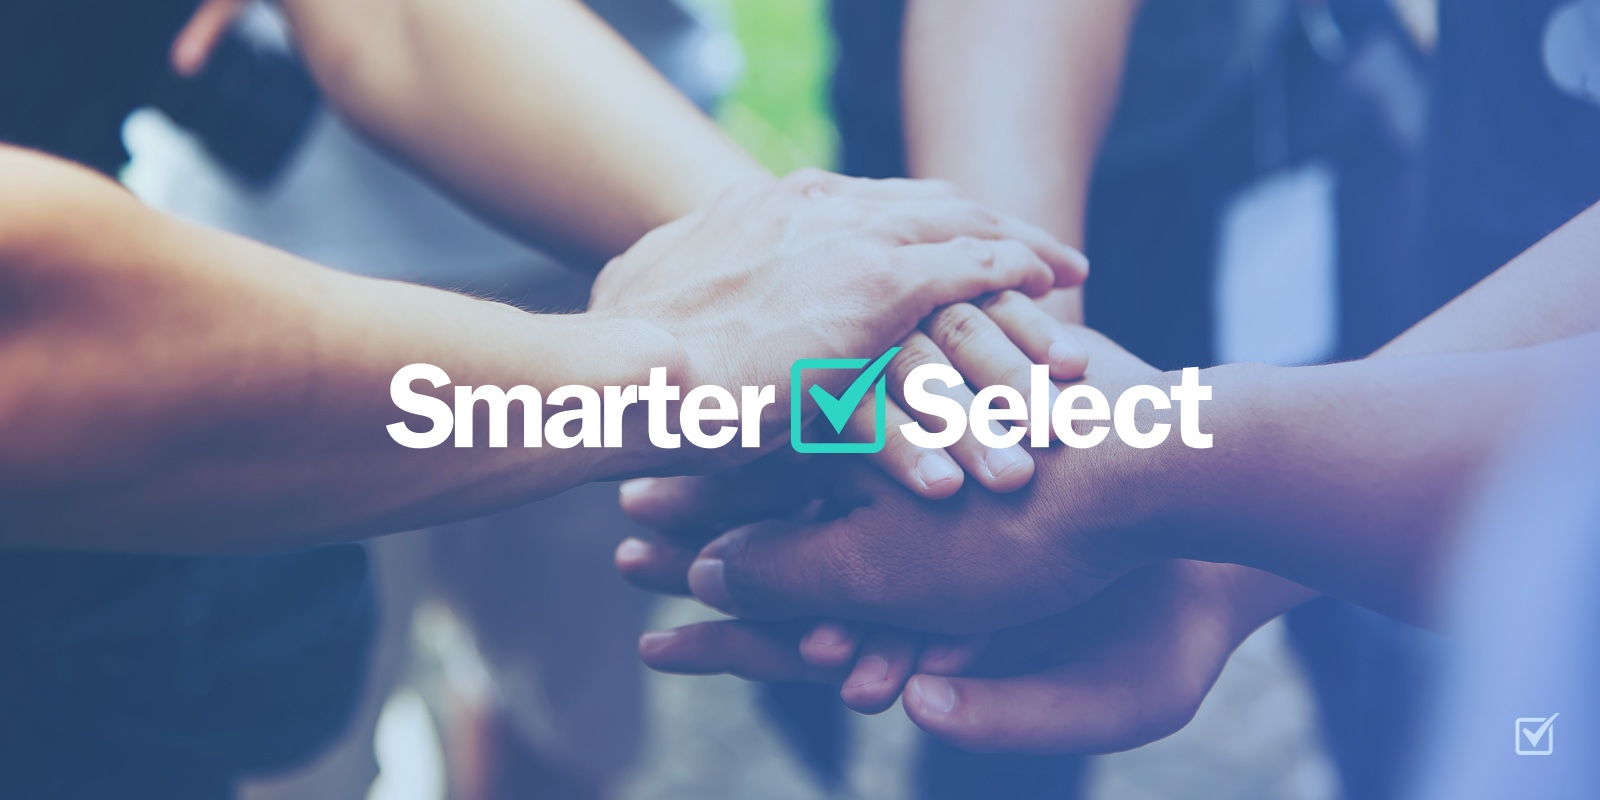 SmarterSelect: Who we are and what we've done